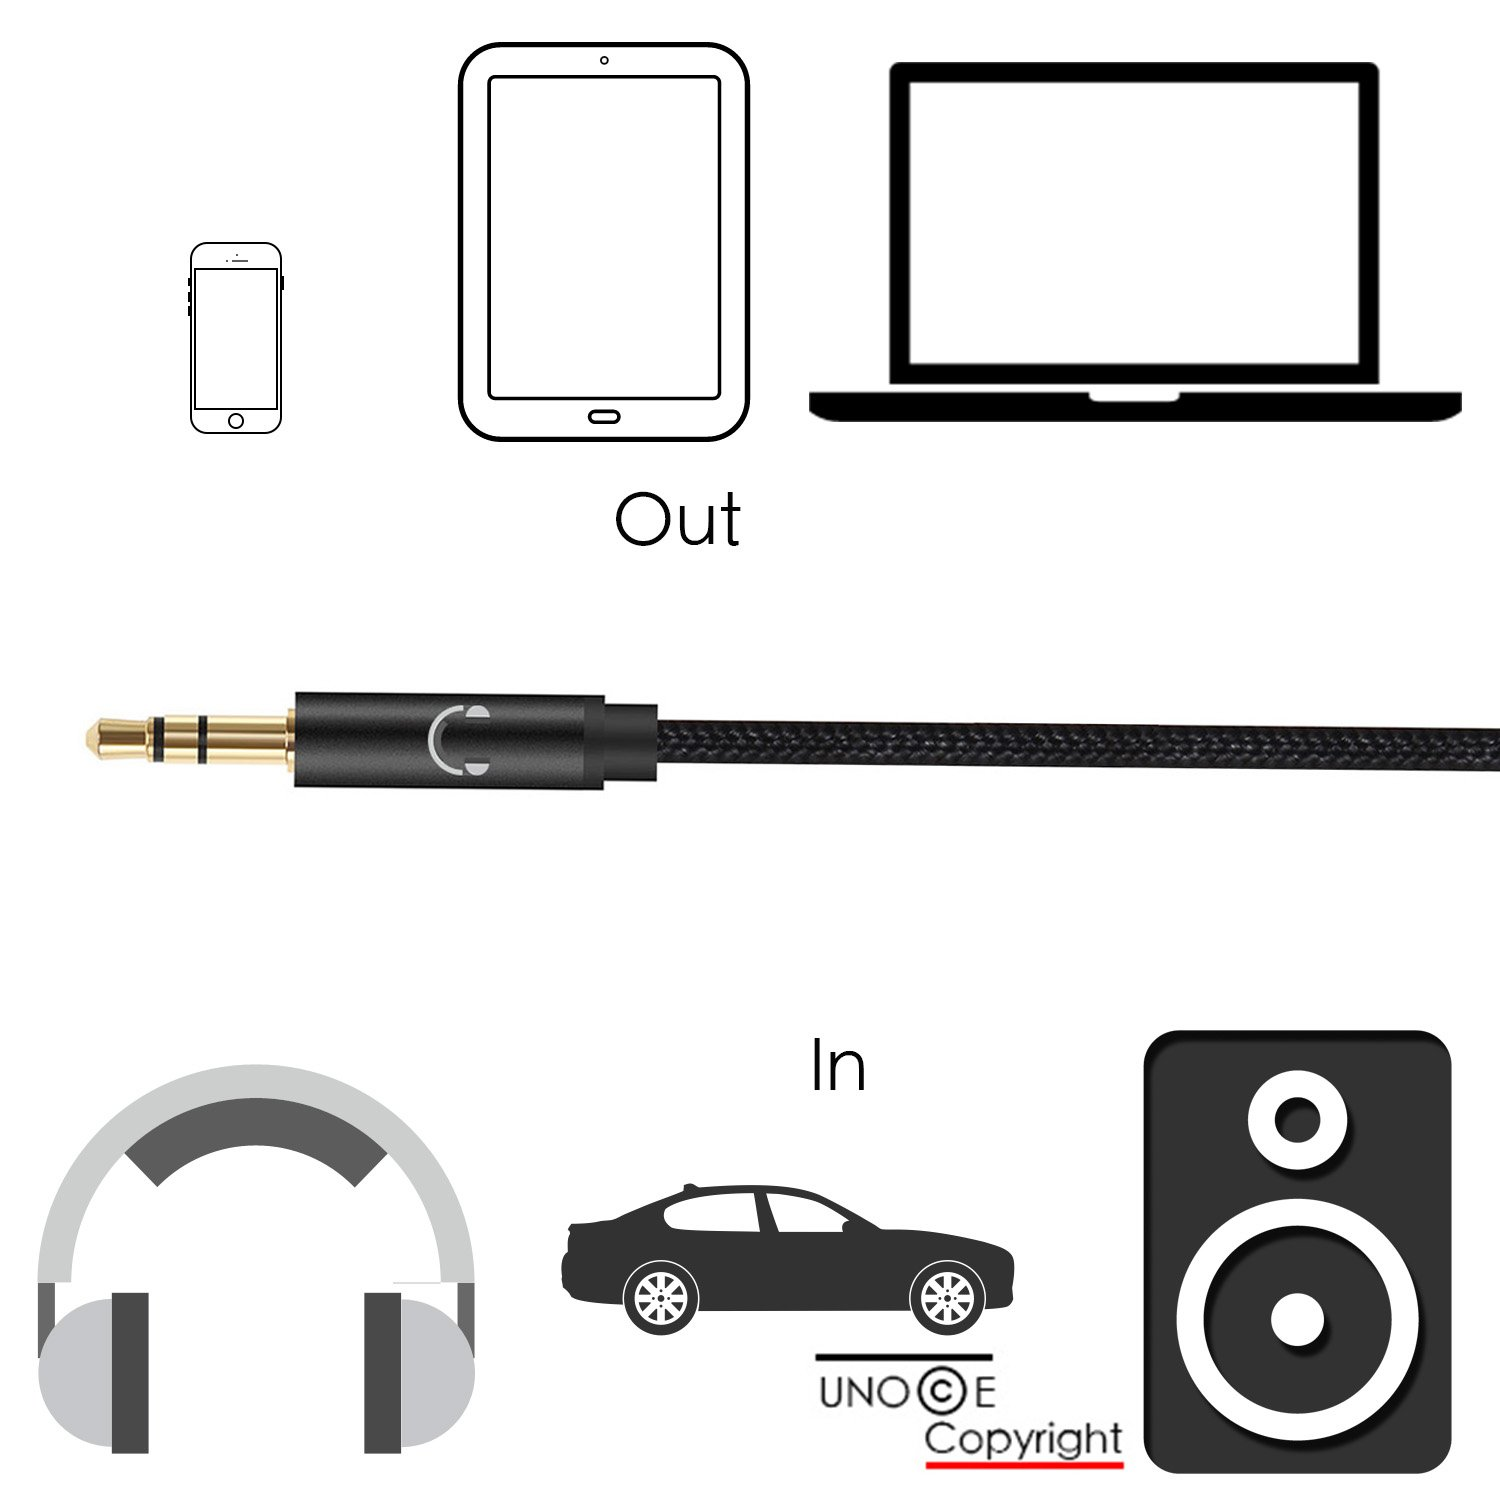 Iphone X Aux Cord Unooe 8 Cable For Car To Automotive Wiring Home Audio Speakers 35mm Headphone Jack Adapter On Iphones Plus Stereobose Speaker Beats Headphoneipadipod Black